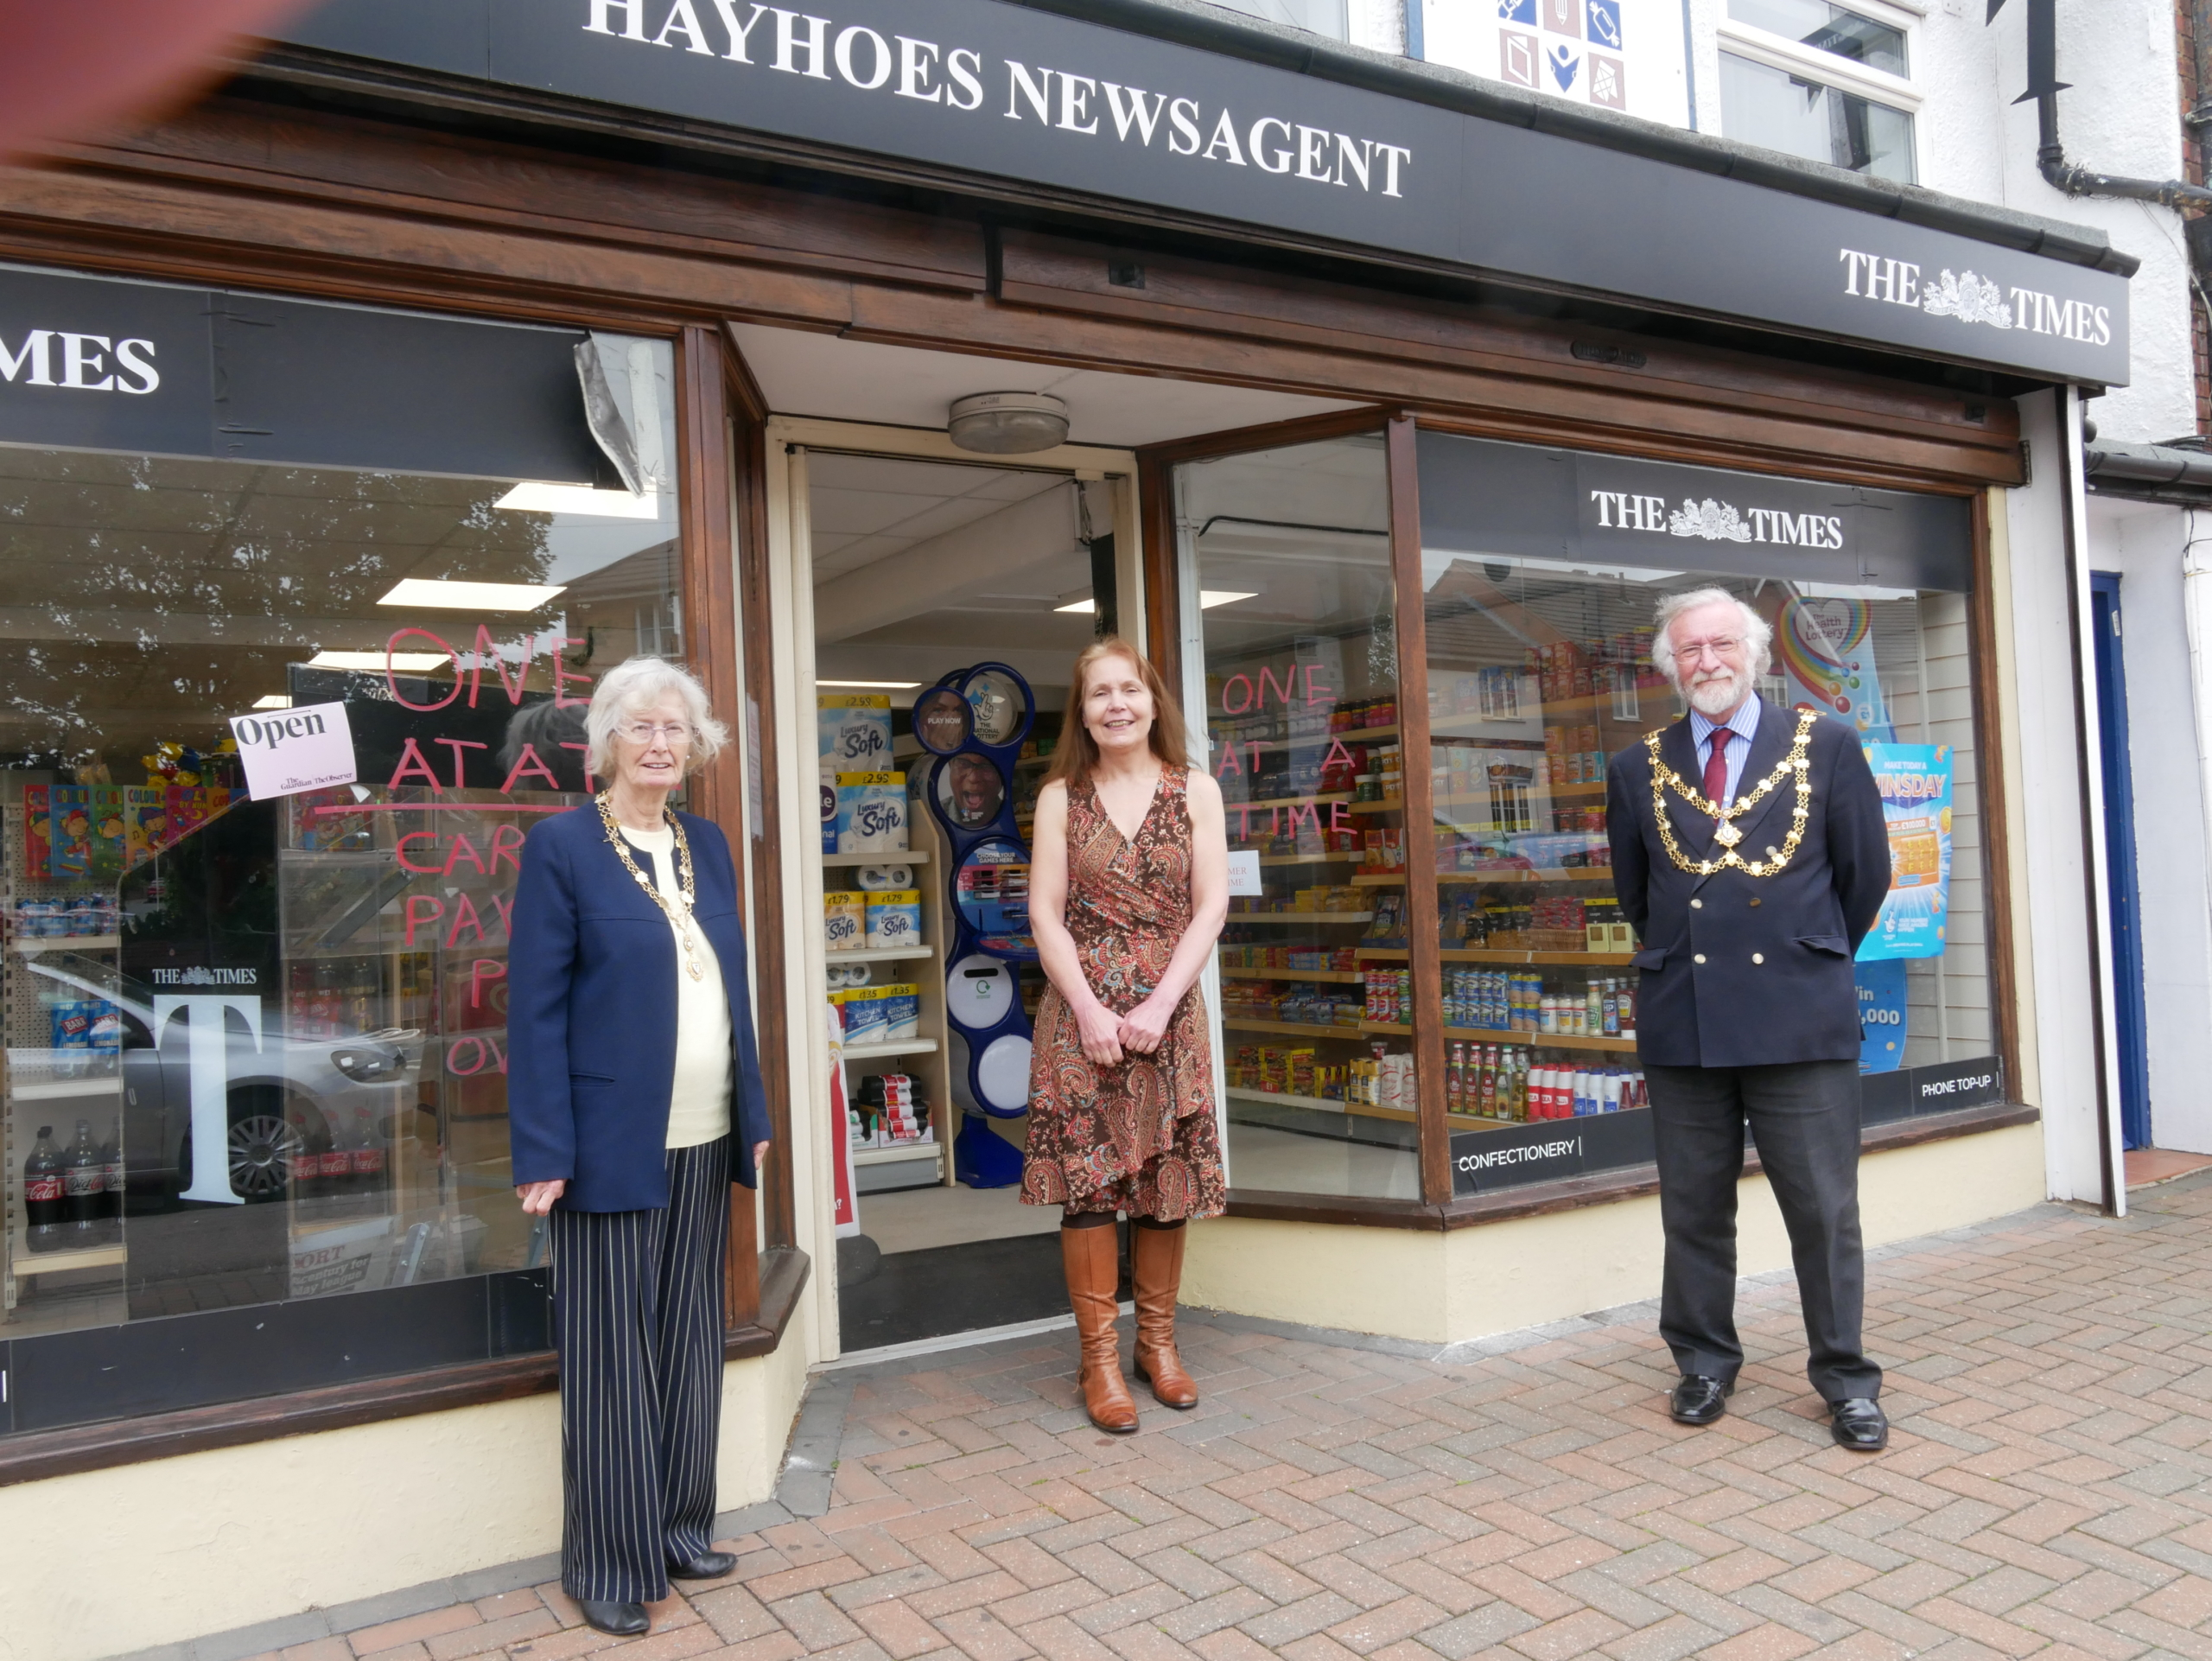 Dunstable Mayor outside Hayhoes newsagent